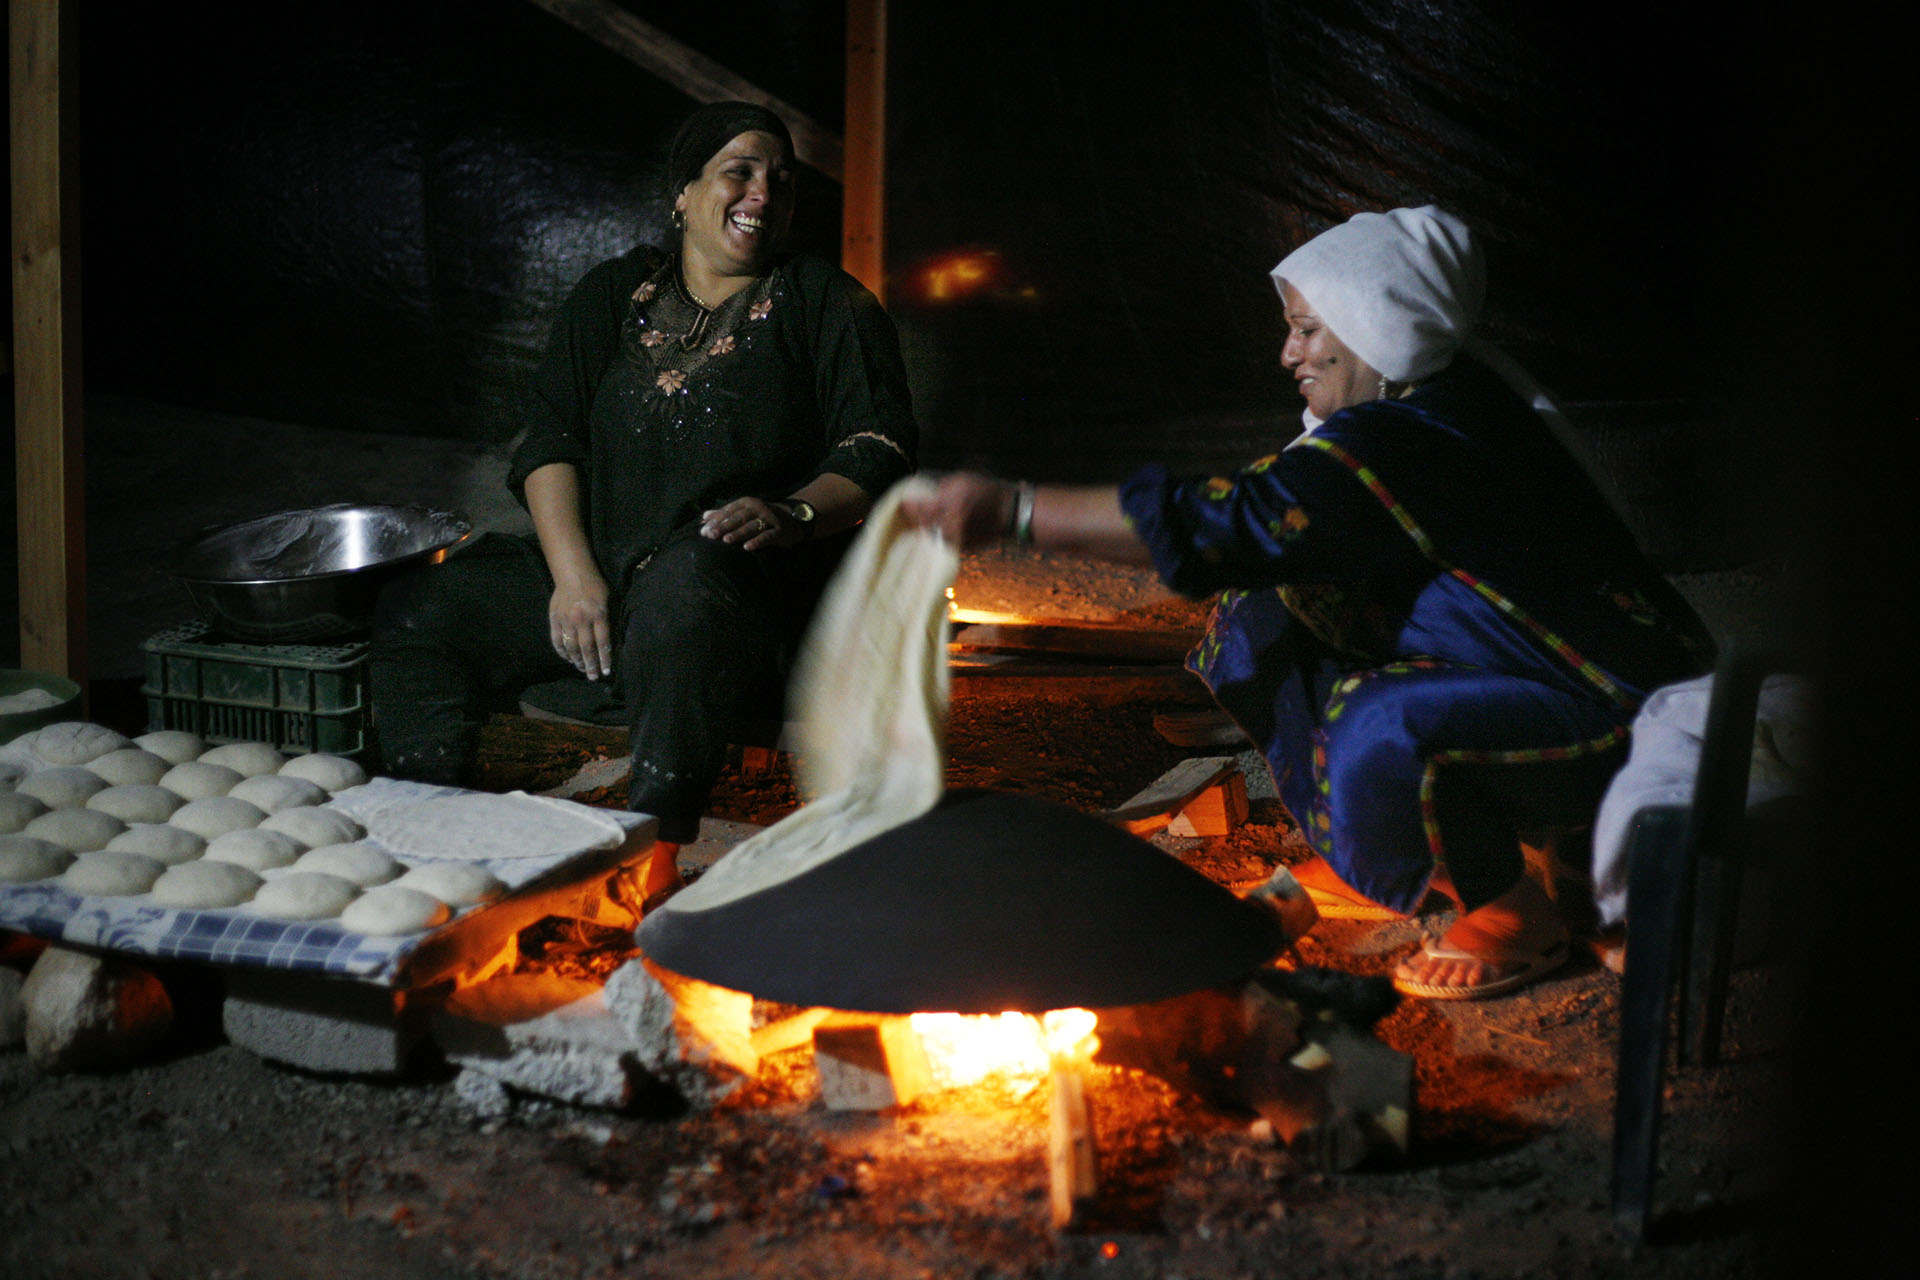 Sabah and Alia bake bread. Al Araqib, September 2010